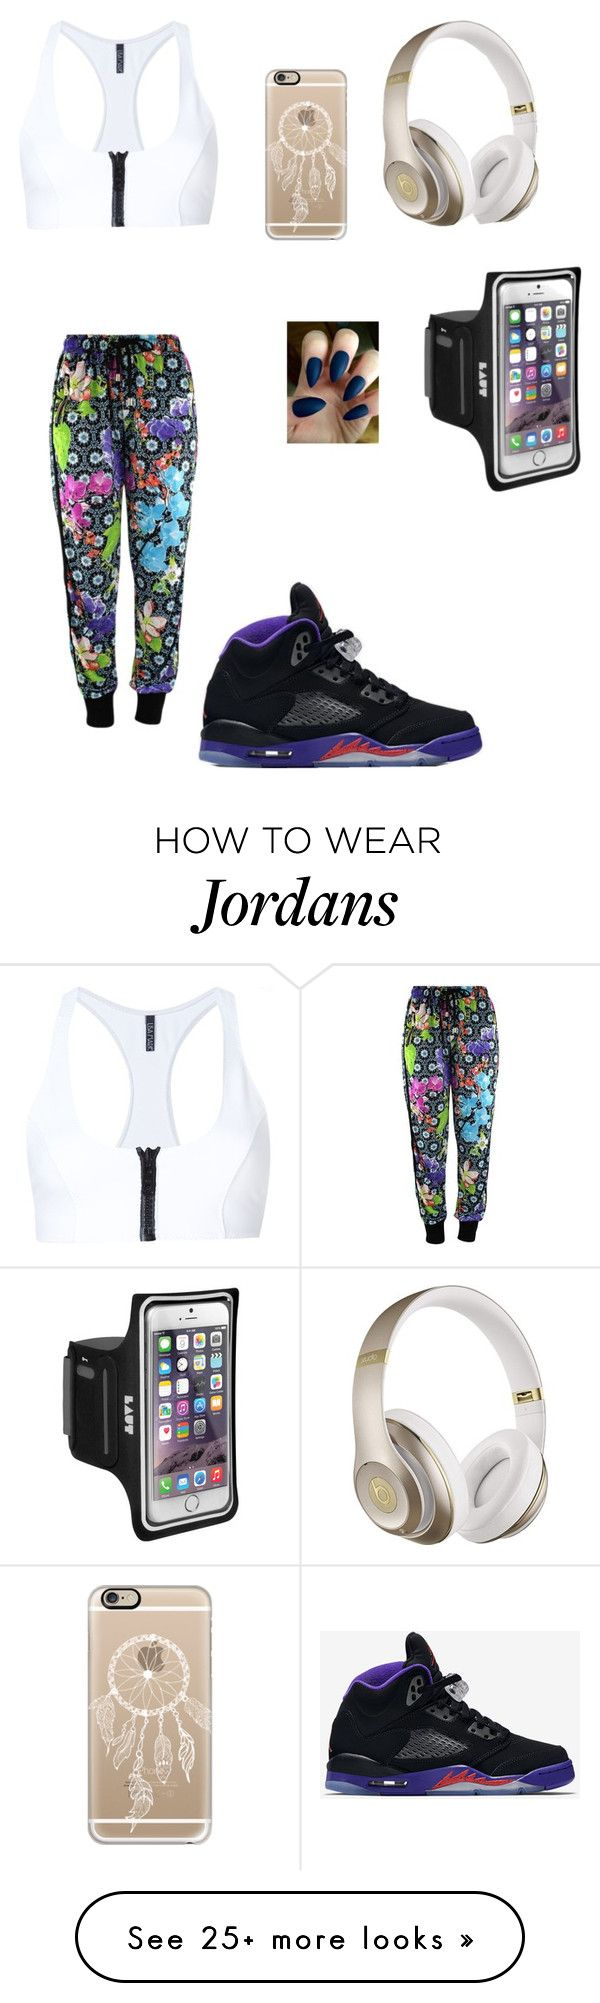 """WWE Book Day 2 Workout"" by rachmiller417 on Polyvore featuring Lisa Marie Fernandez, NIKE, Beats by Dr. Dre and Casetify"